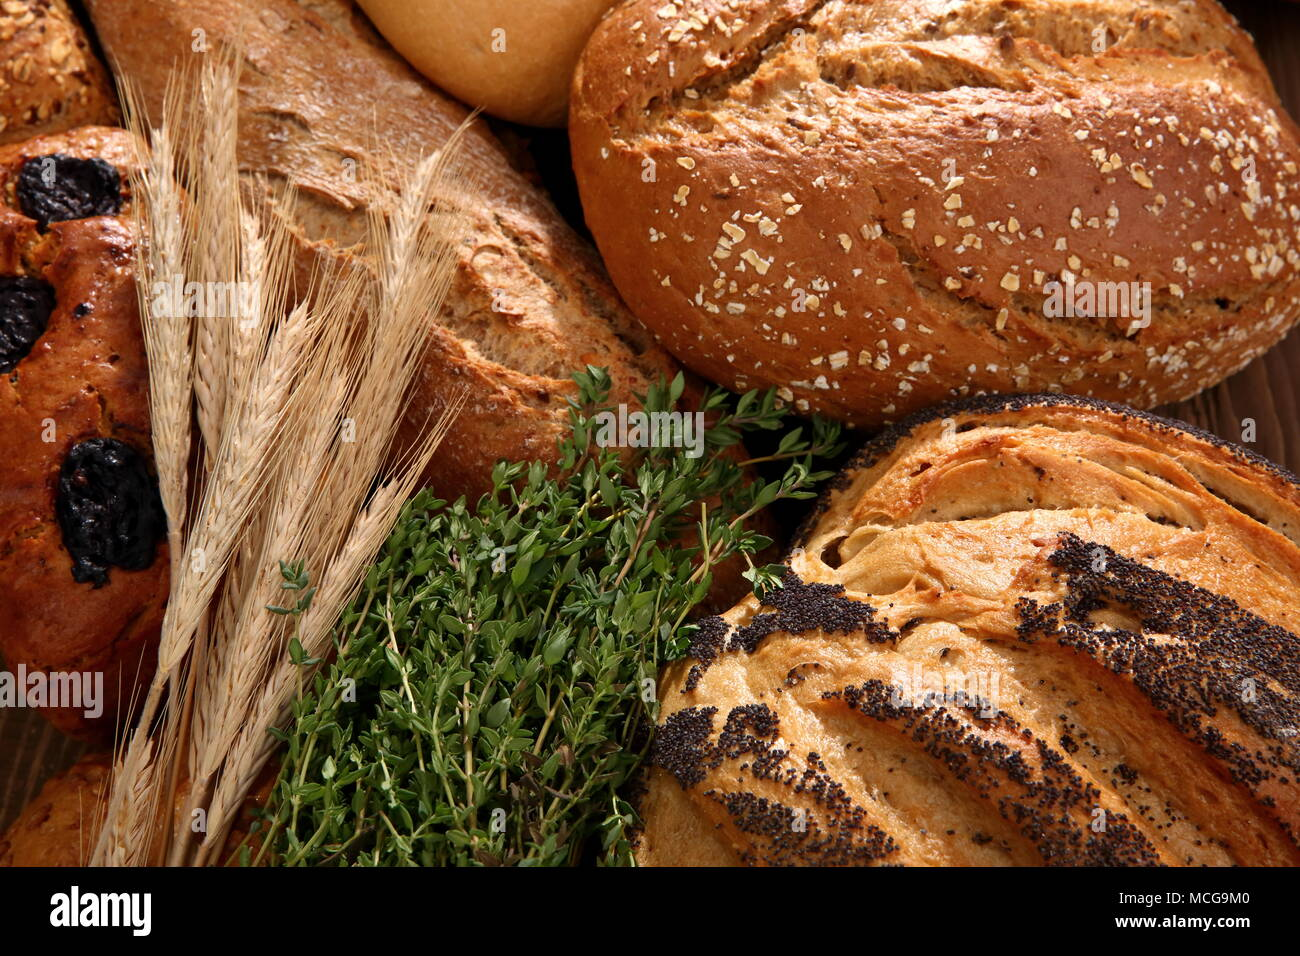 Bread and rolls at present times occur in many types and shapes not only in Poland but all over the world. - Stock Image